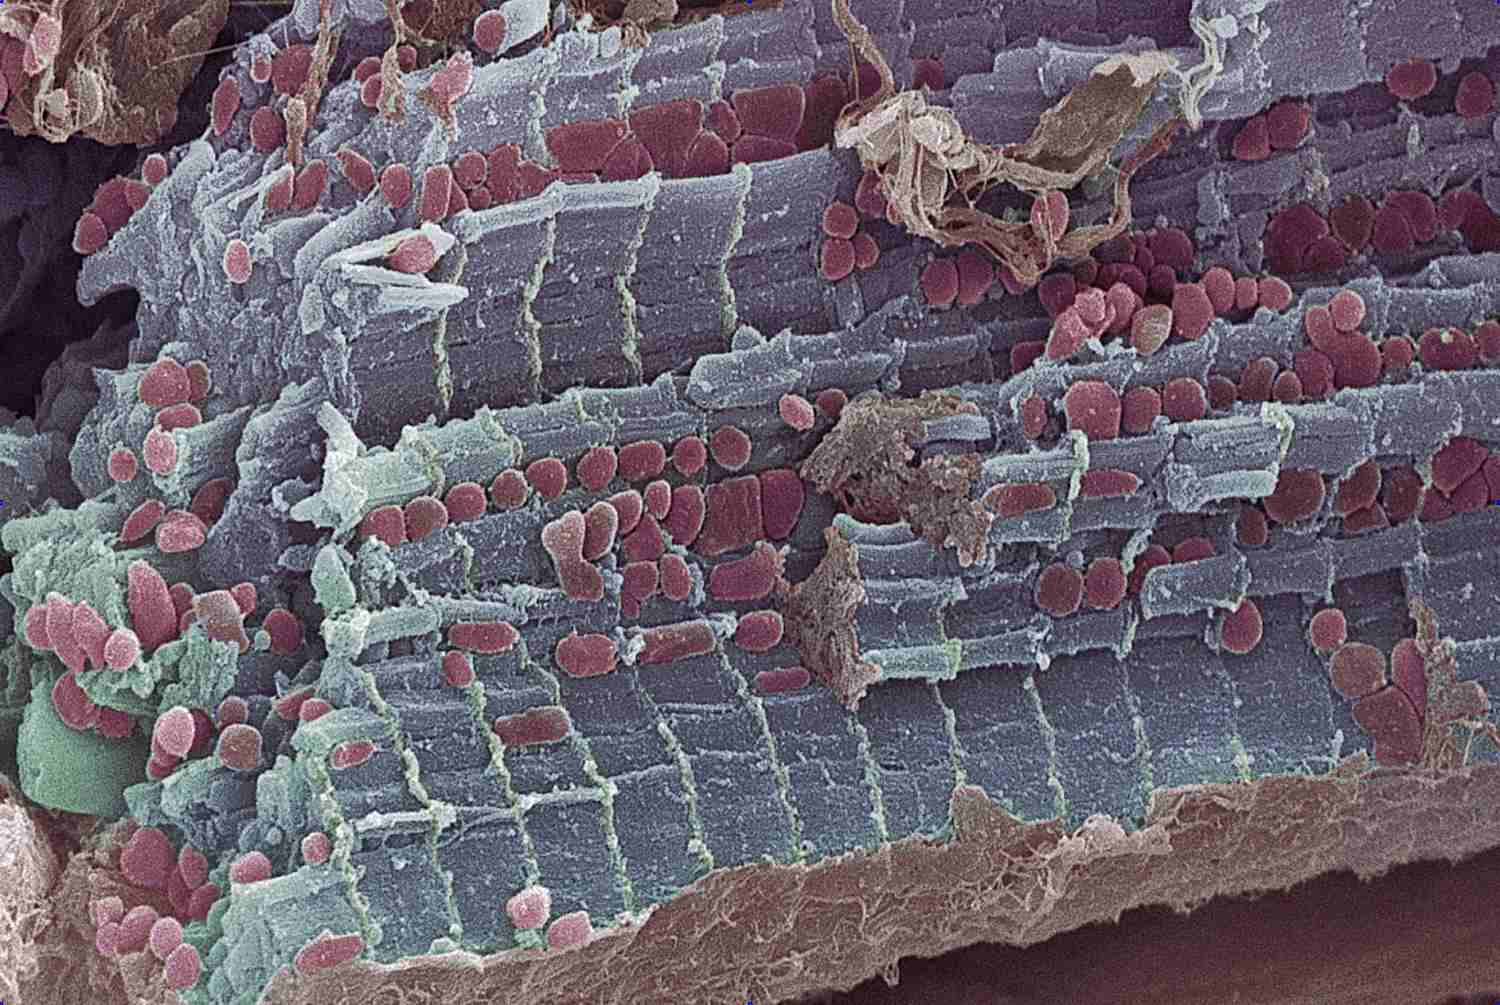 Cardiac muscle close up view.